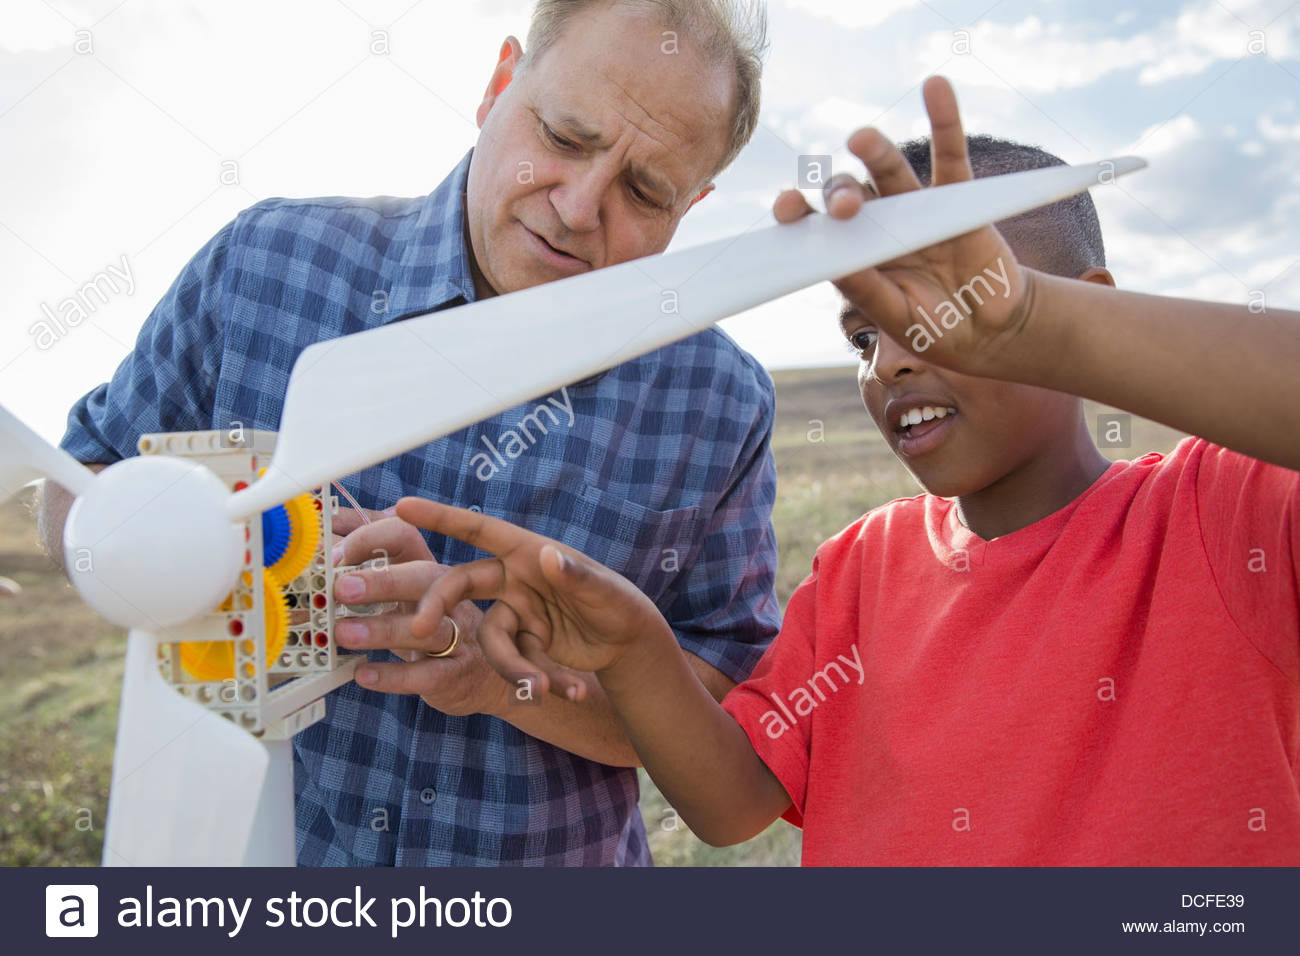 Man explaining wind turbine to schoolboy - Stock Image